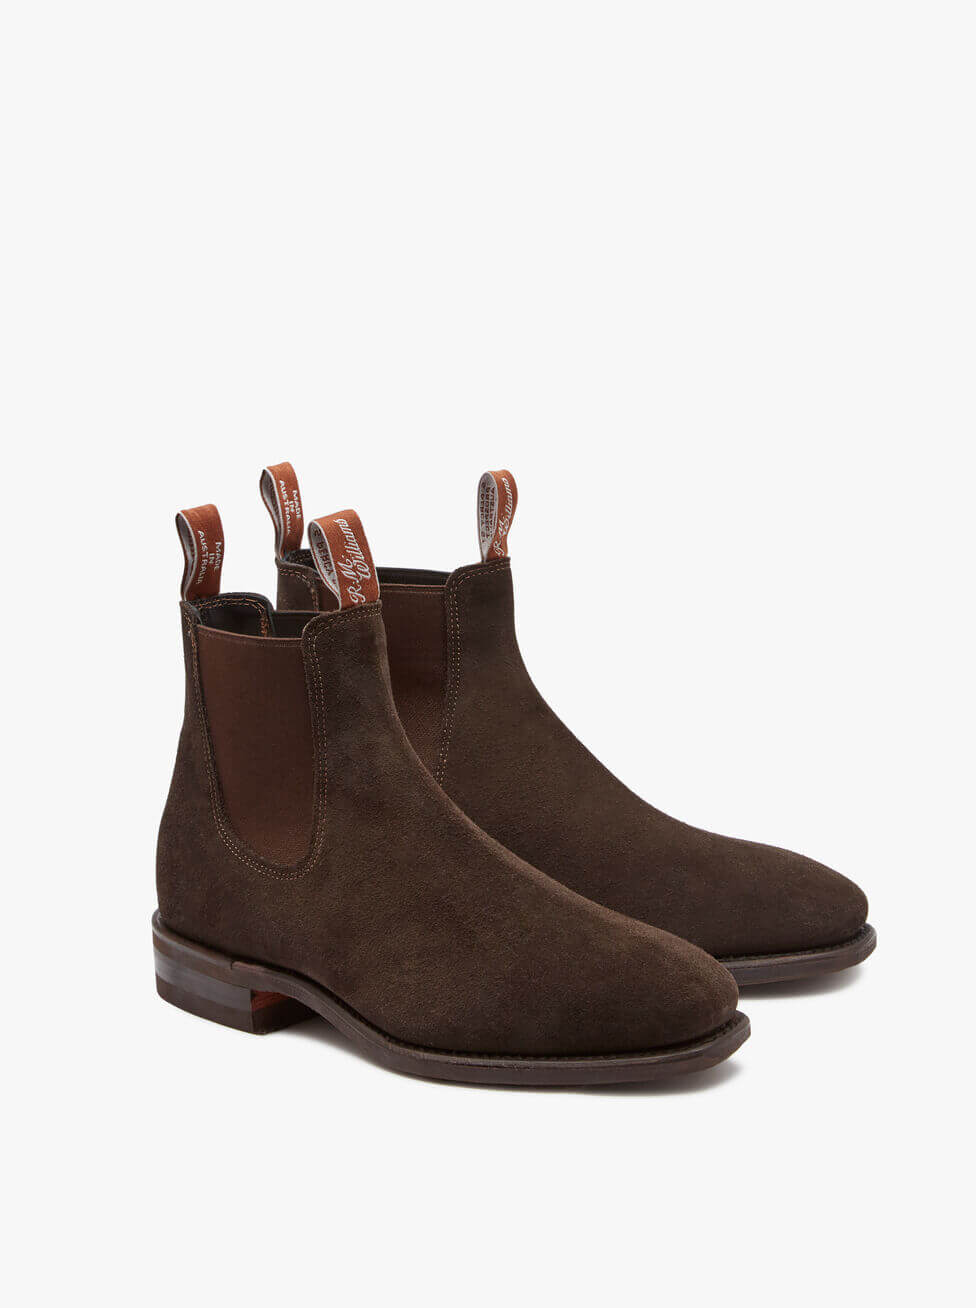 R.M. Williams Chocolate Suede Comfort Craftsman Boot Yearling Leather | Davids Of Haslemere